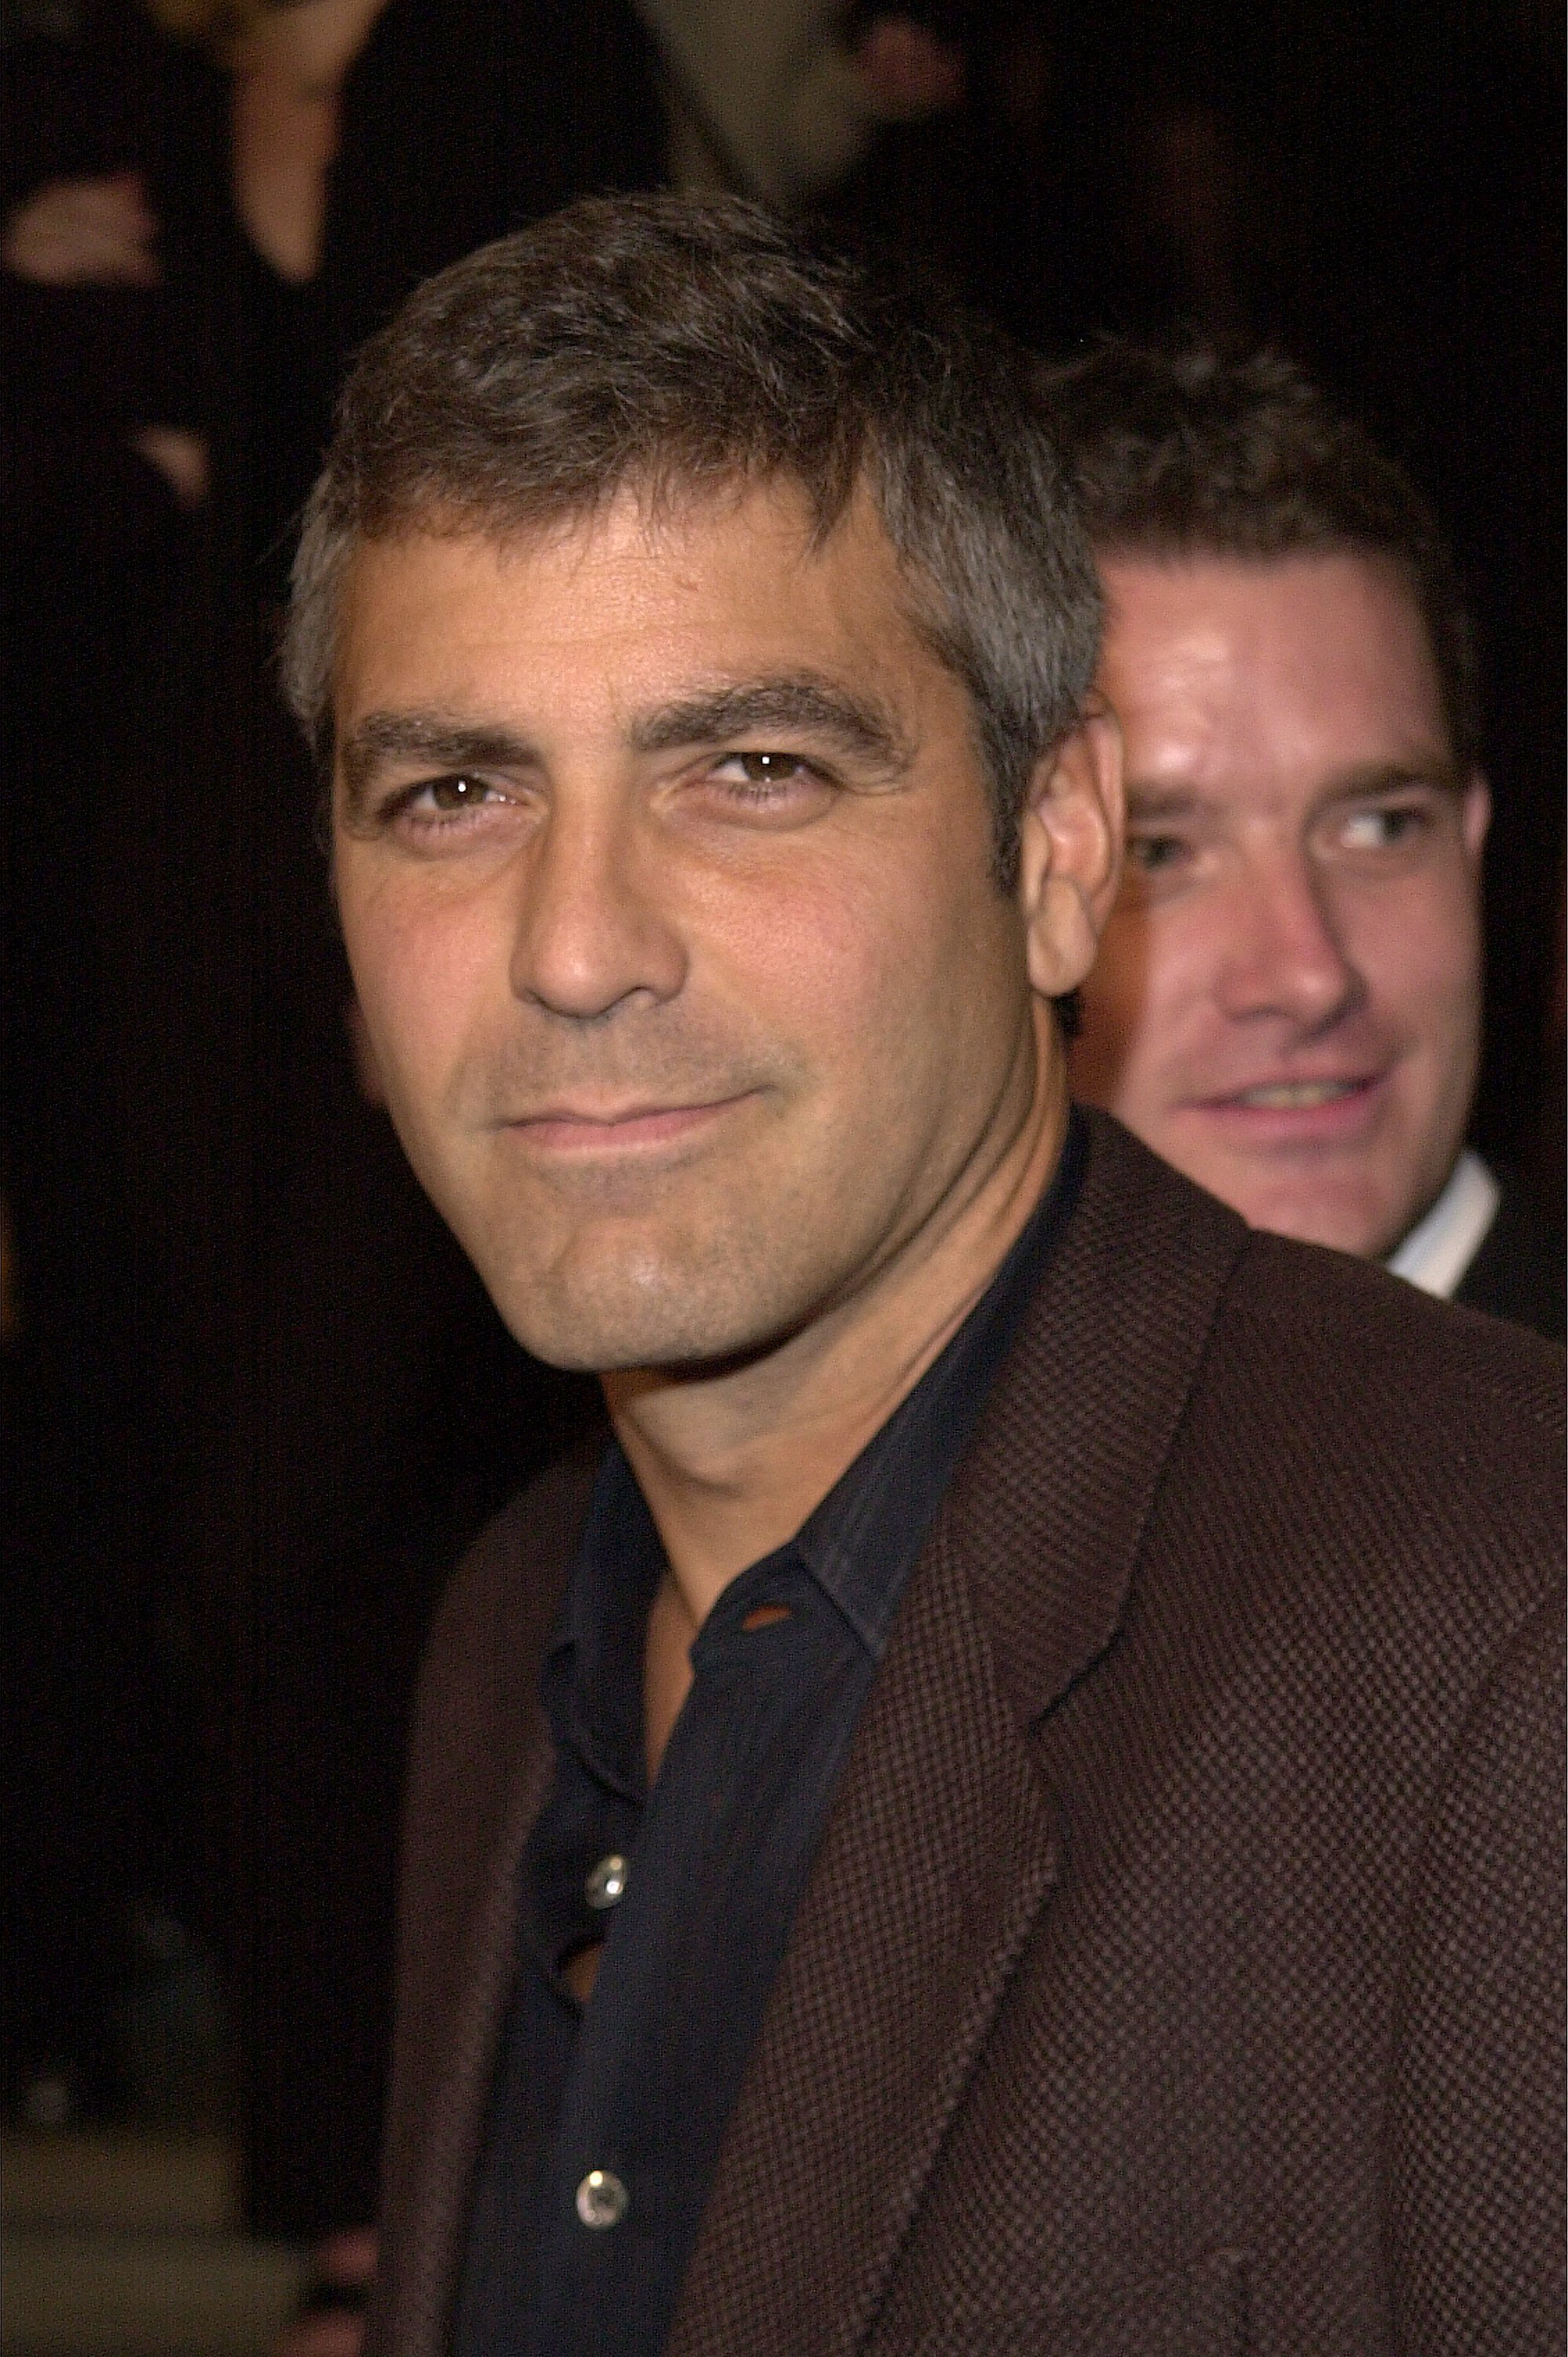 George Clooney l Photo: Getty Images